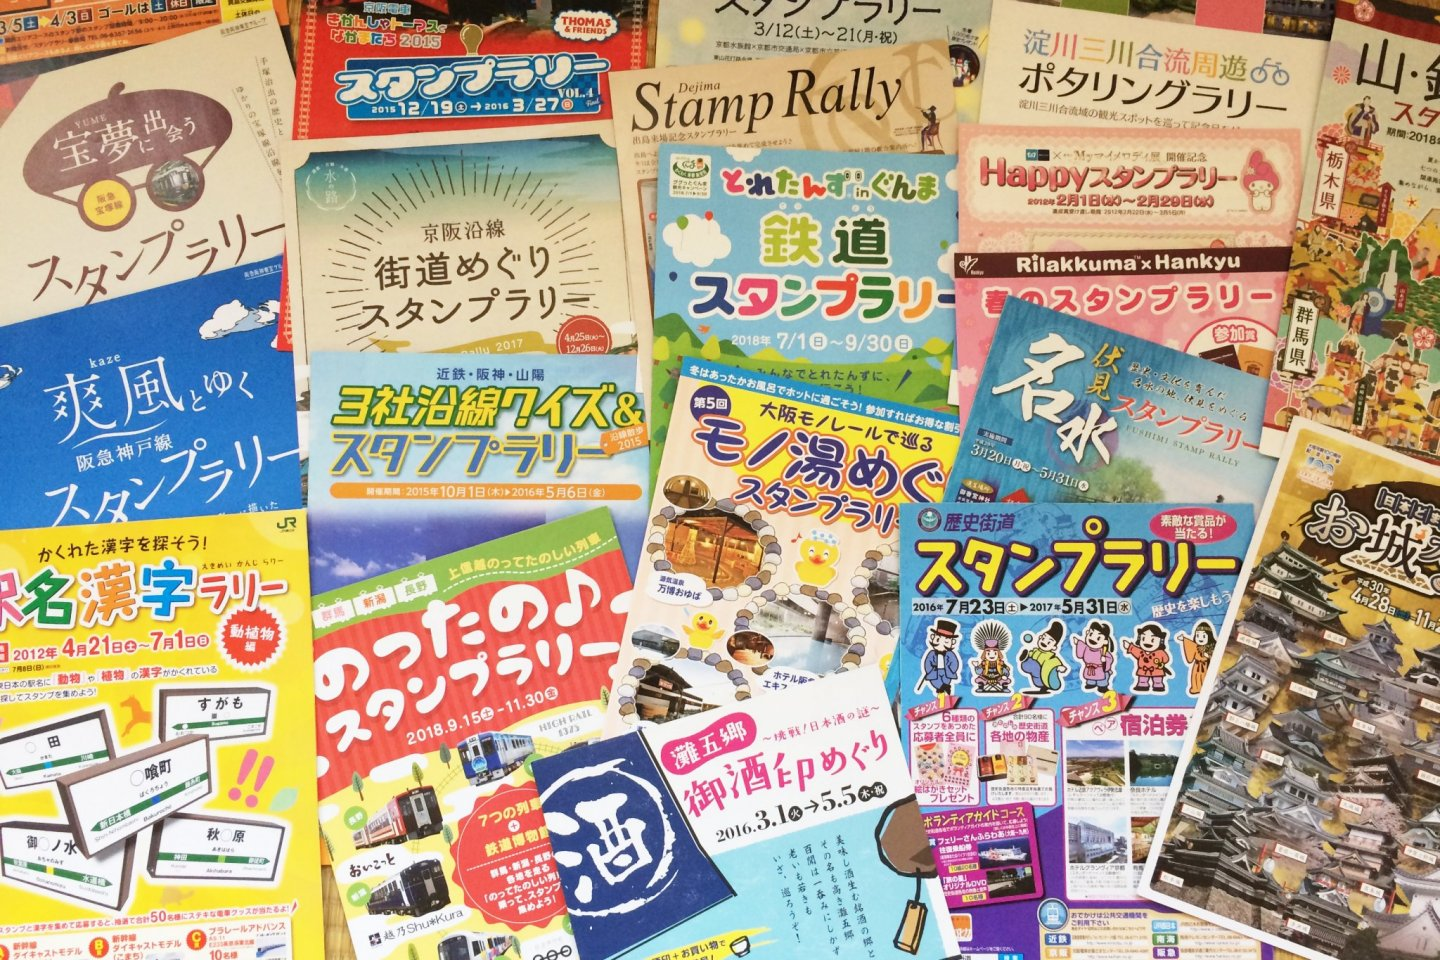 Stamp rally flyers